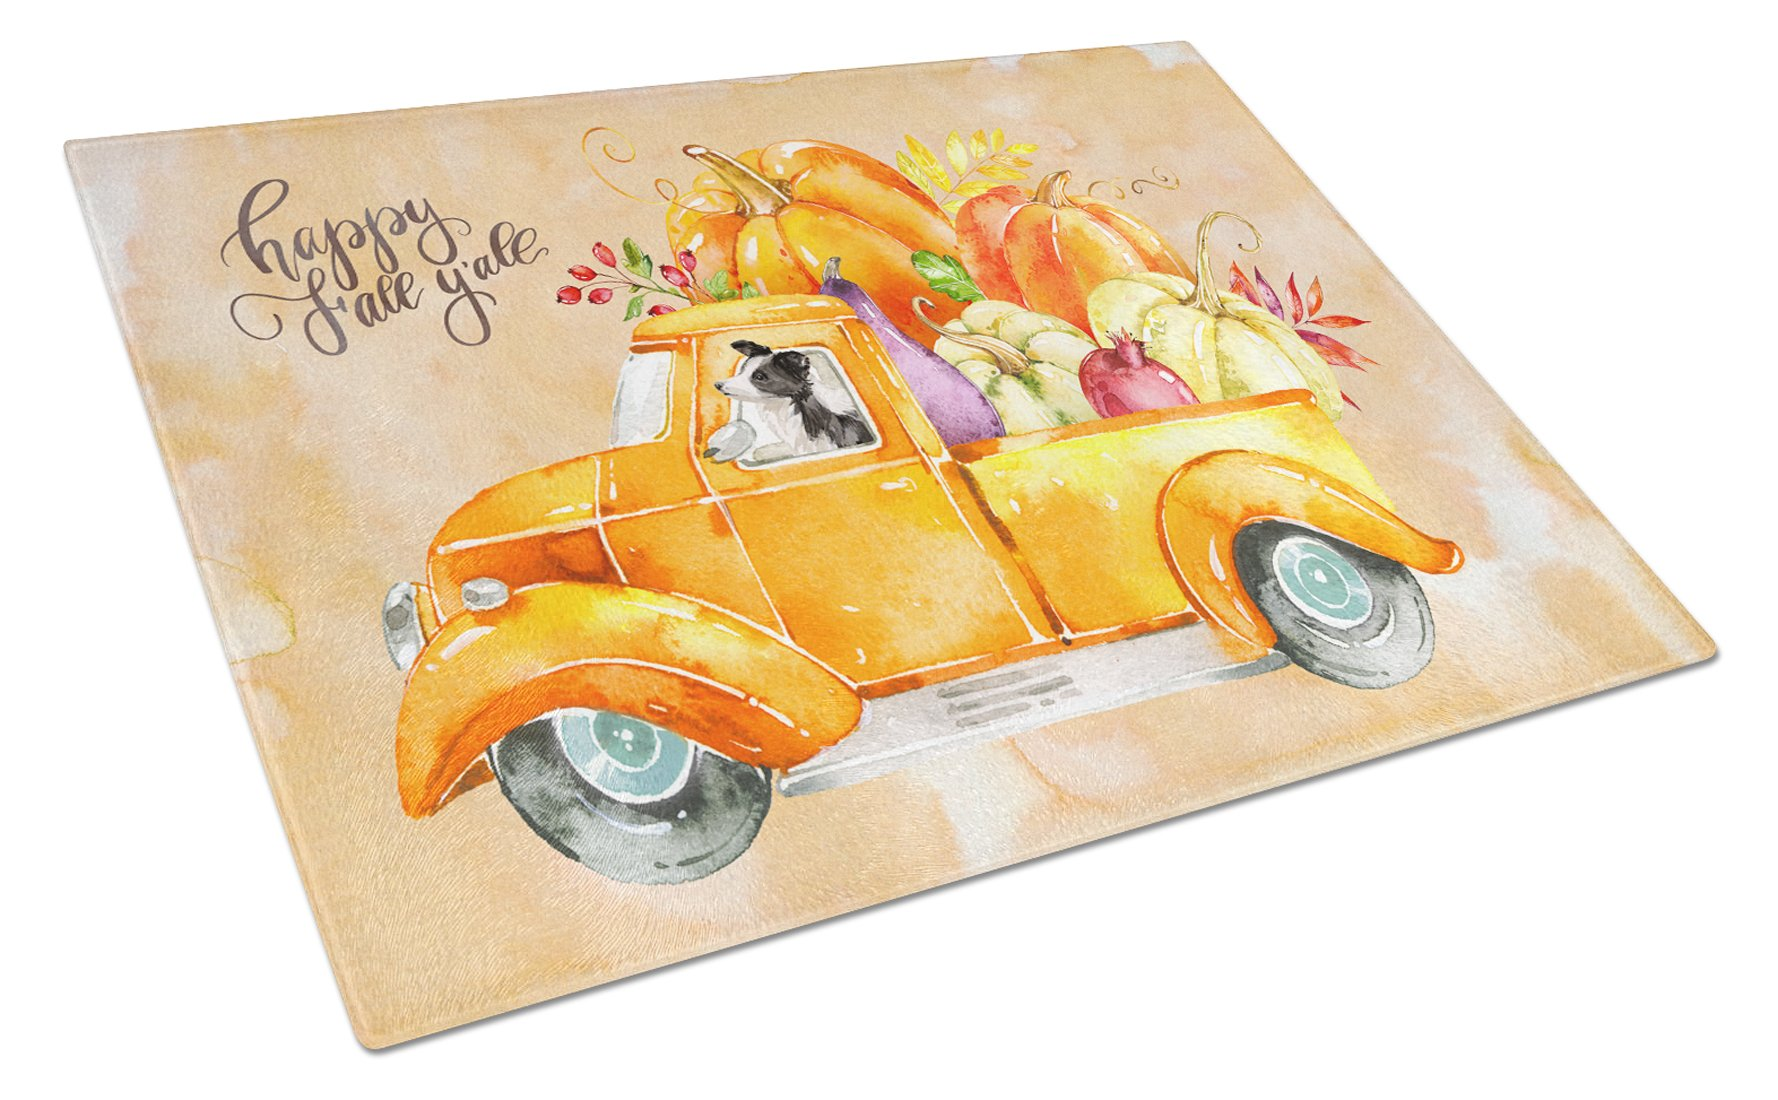 Fall Harvest Border Collie Glass Cutting Board Large CK2657LCB by Caroline's Treasures